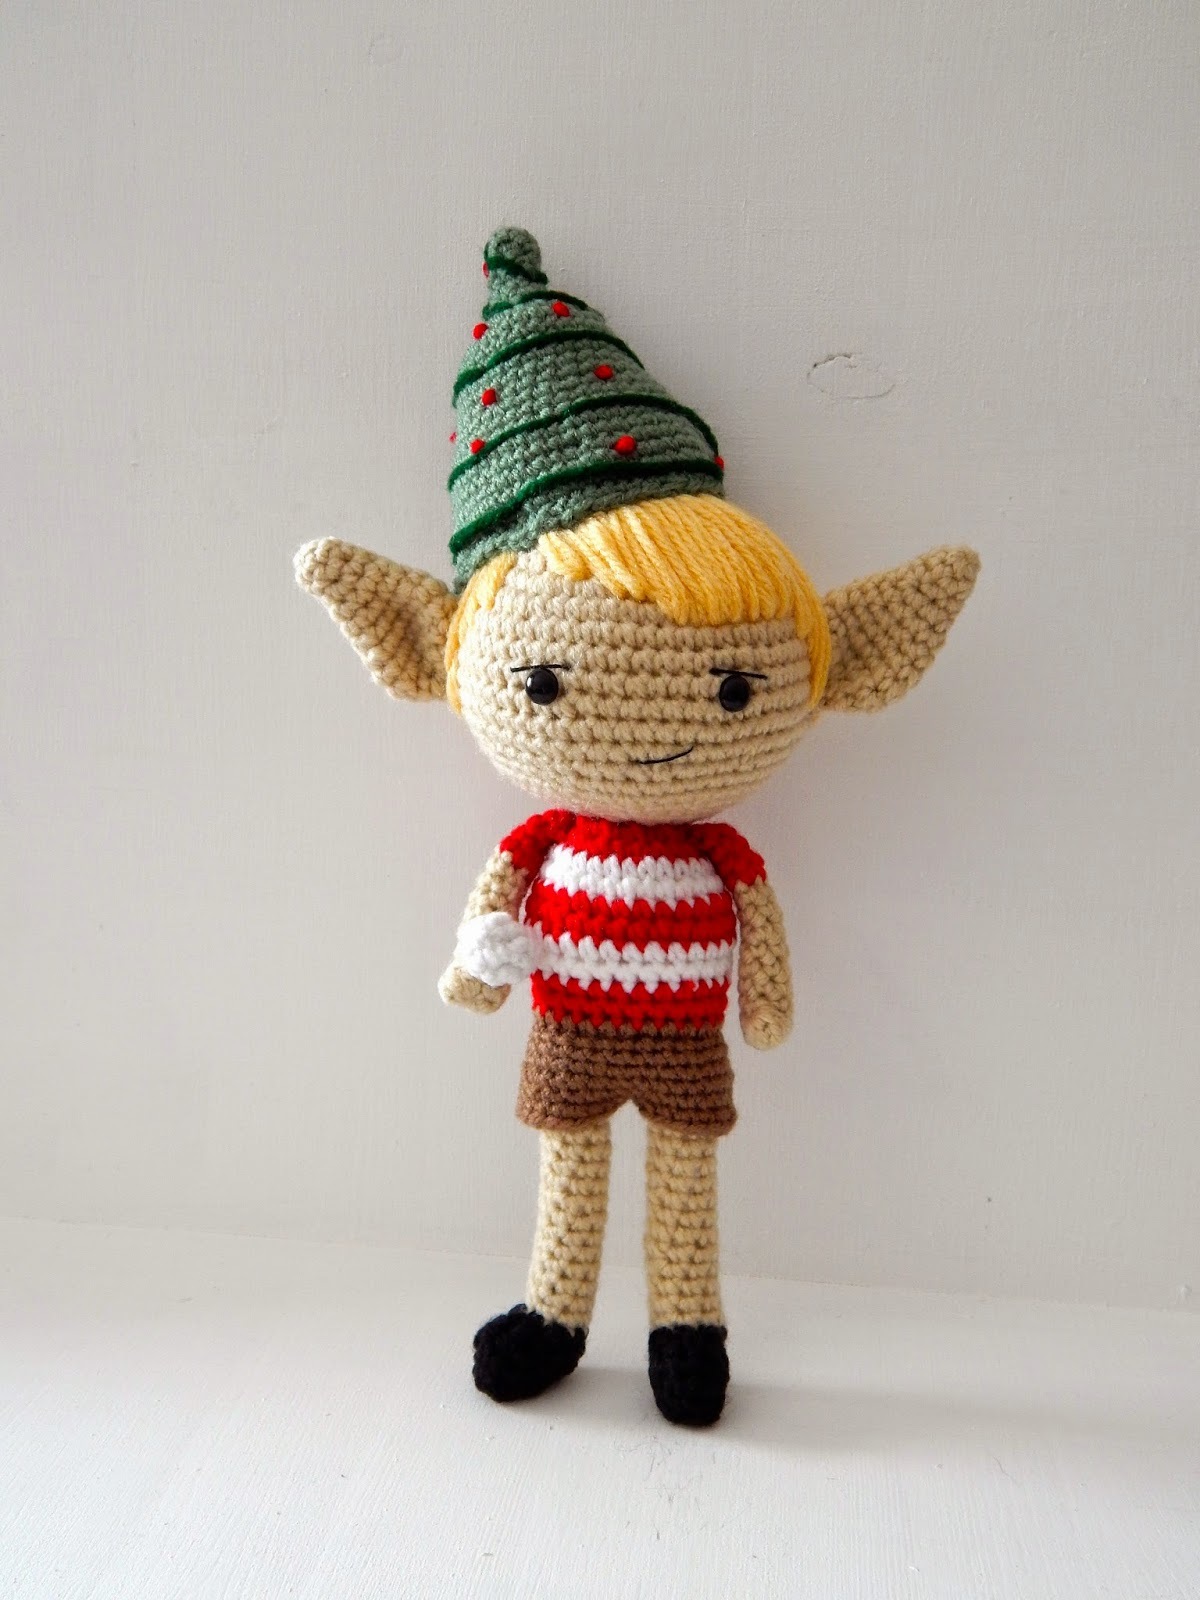 Crochet Elf Pattern - thefriendlyredfox.com | 1600x1200